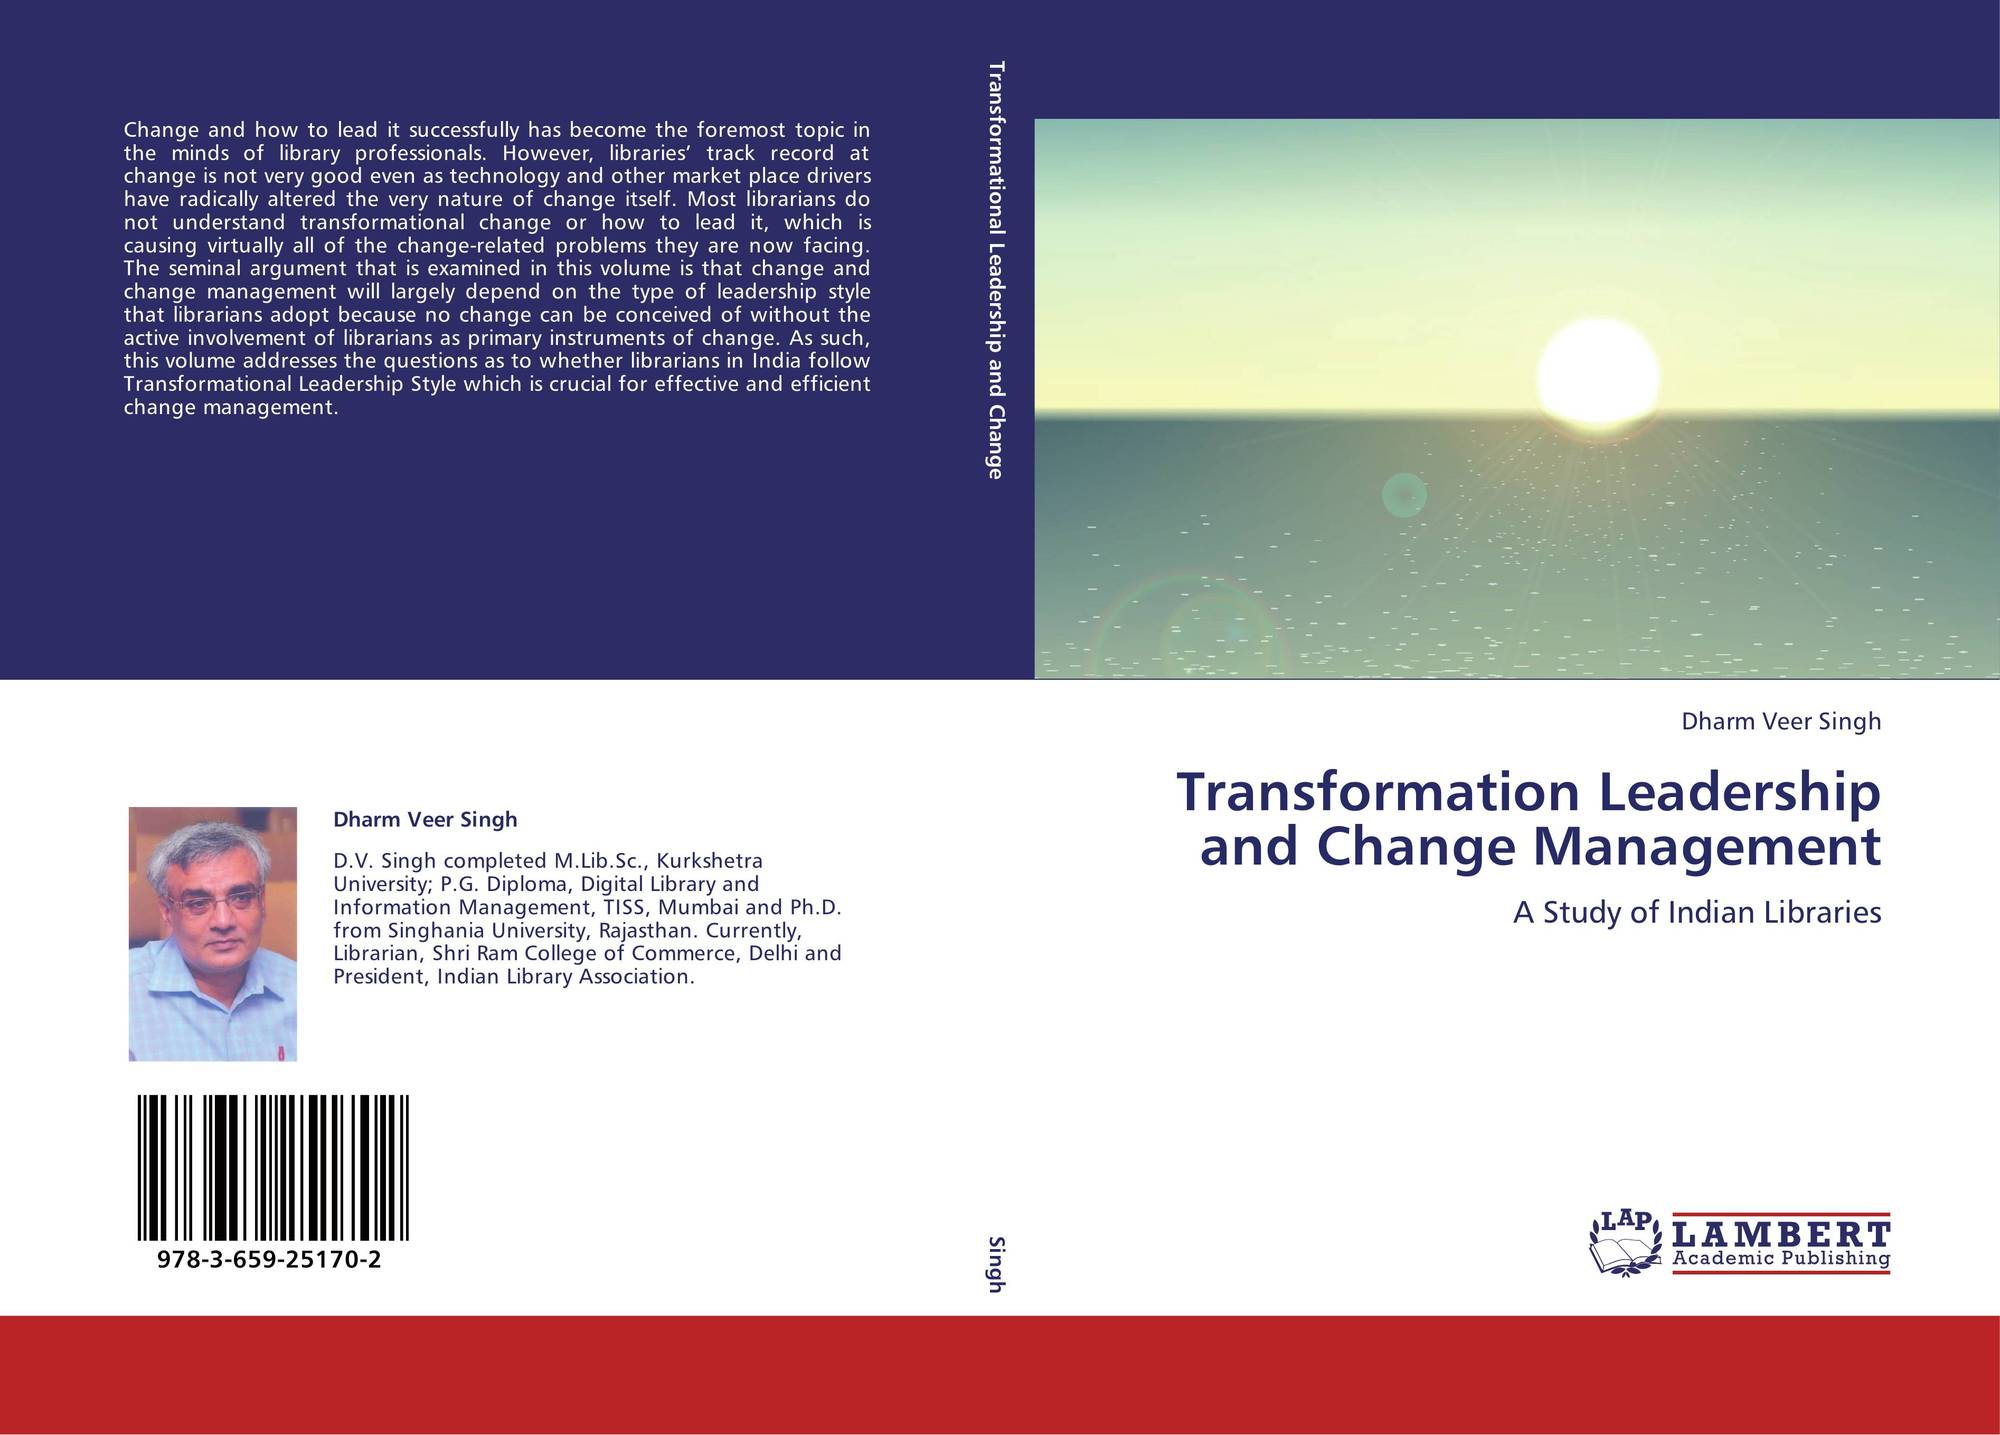 transformational leadership and economic efficiency Transformational leadership makes use of impression management and therefore lends itself to amoral self promotion by leaders the theory is very difficult to e trained or taught because it is a combination of many leadership theories.